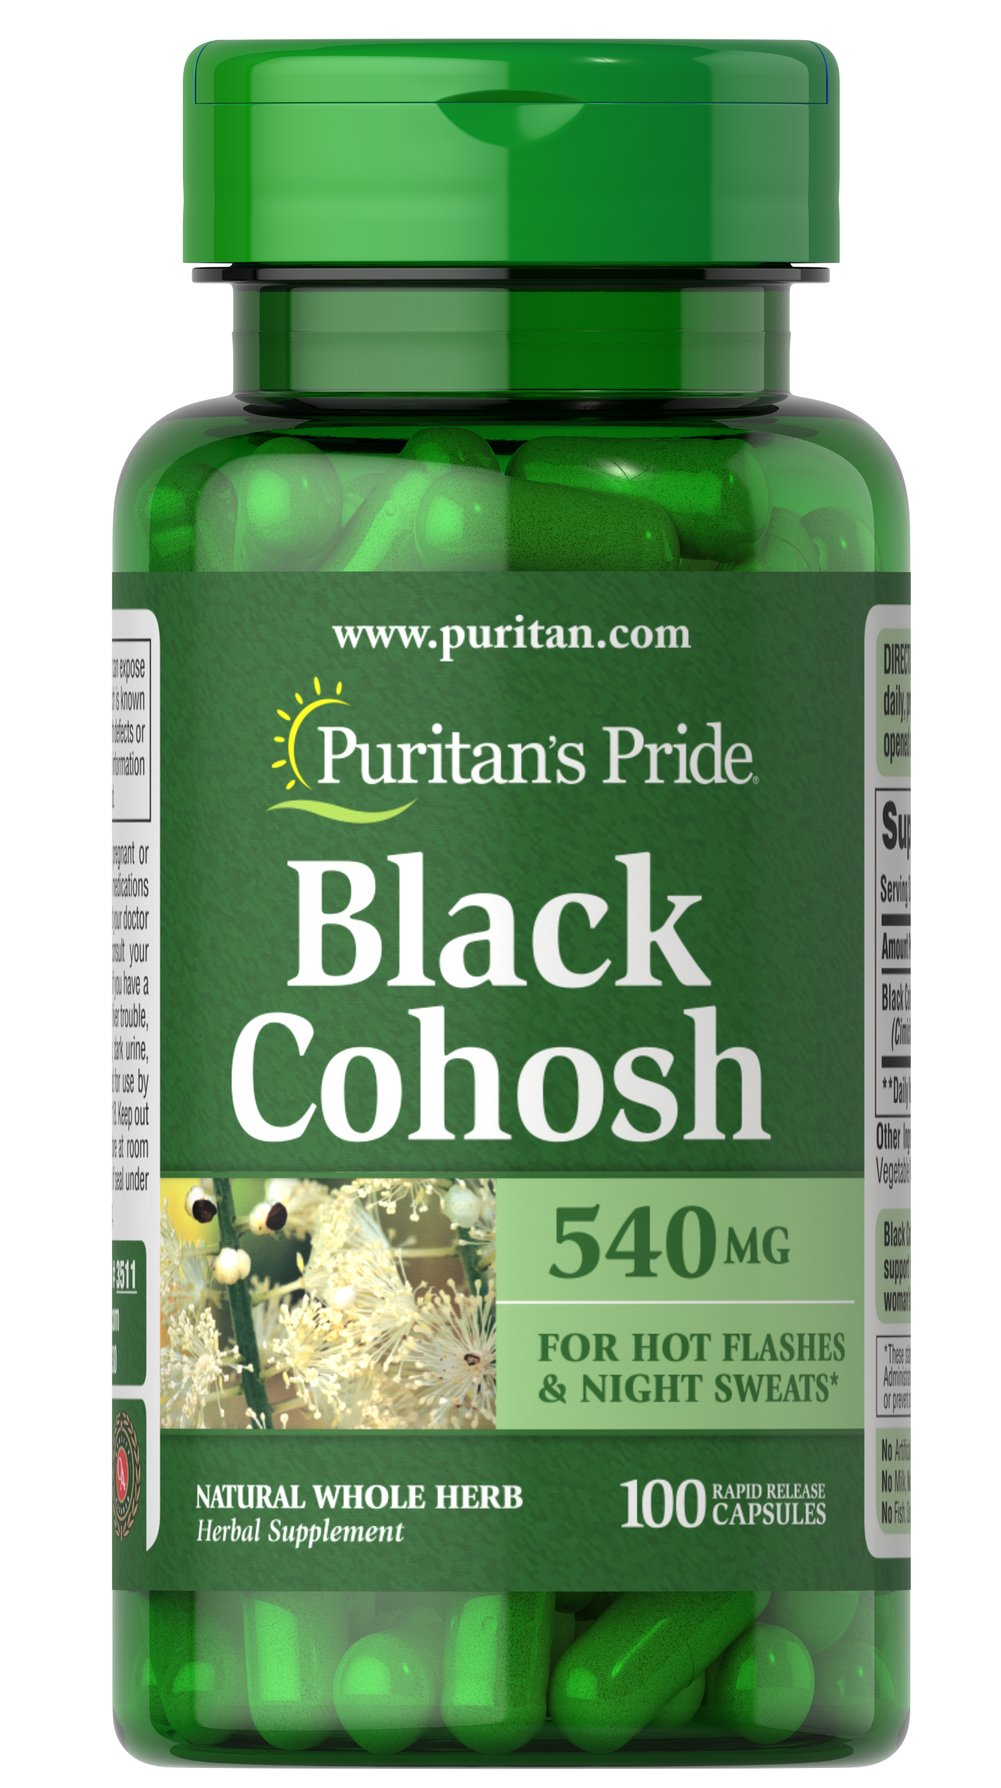 Black Cohosh 540 mg <p>Supports Menopausal Health**</p><p> As one of the leading herbs for women's health, Black Cohosh is famous for its ability to promote menopausal health.** Black Cohosh helps support the physical changes that occur in a woman's body over time.**</p><p></p> 100 Capsules 540 mg $10.48